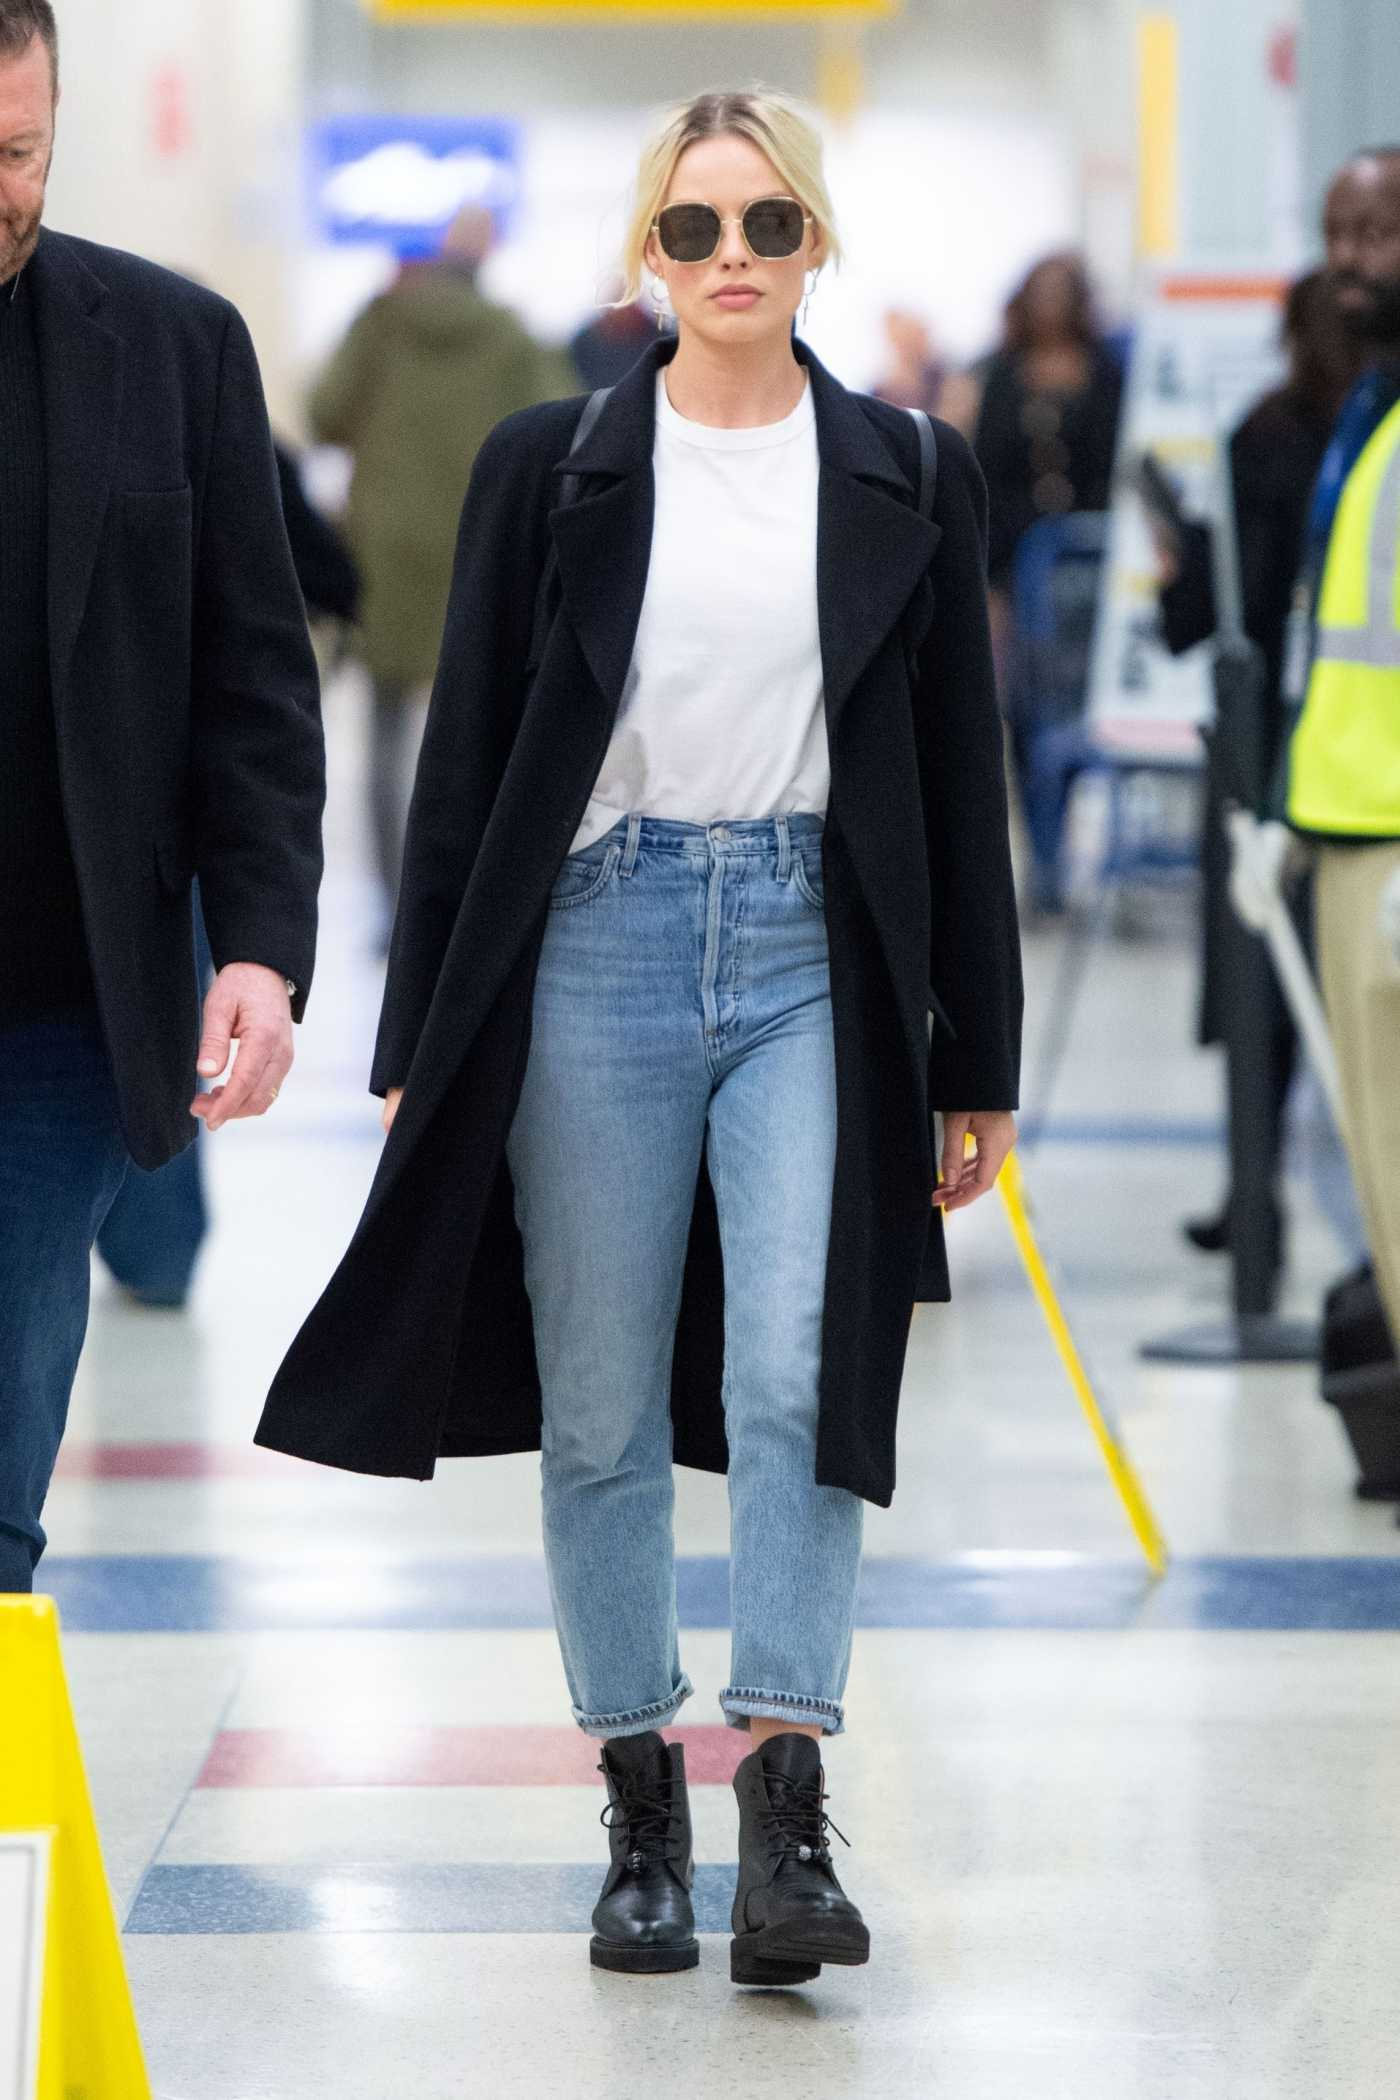 Margot Robbie in a Black Coat Arrives at JFK Airport in New York City 02/03/2020